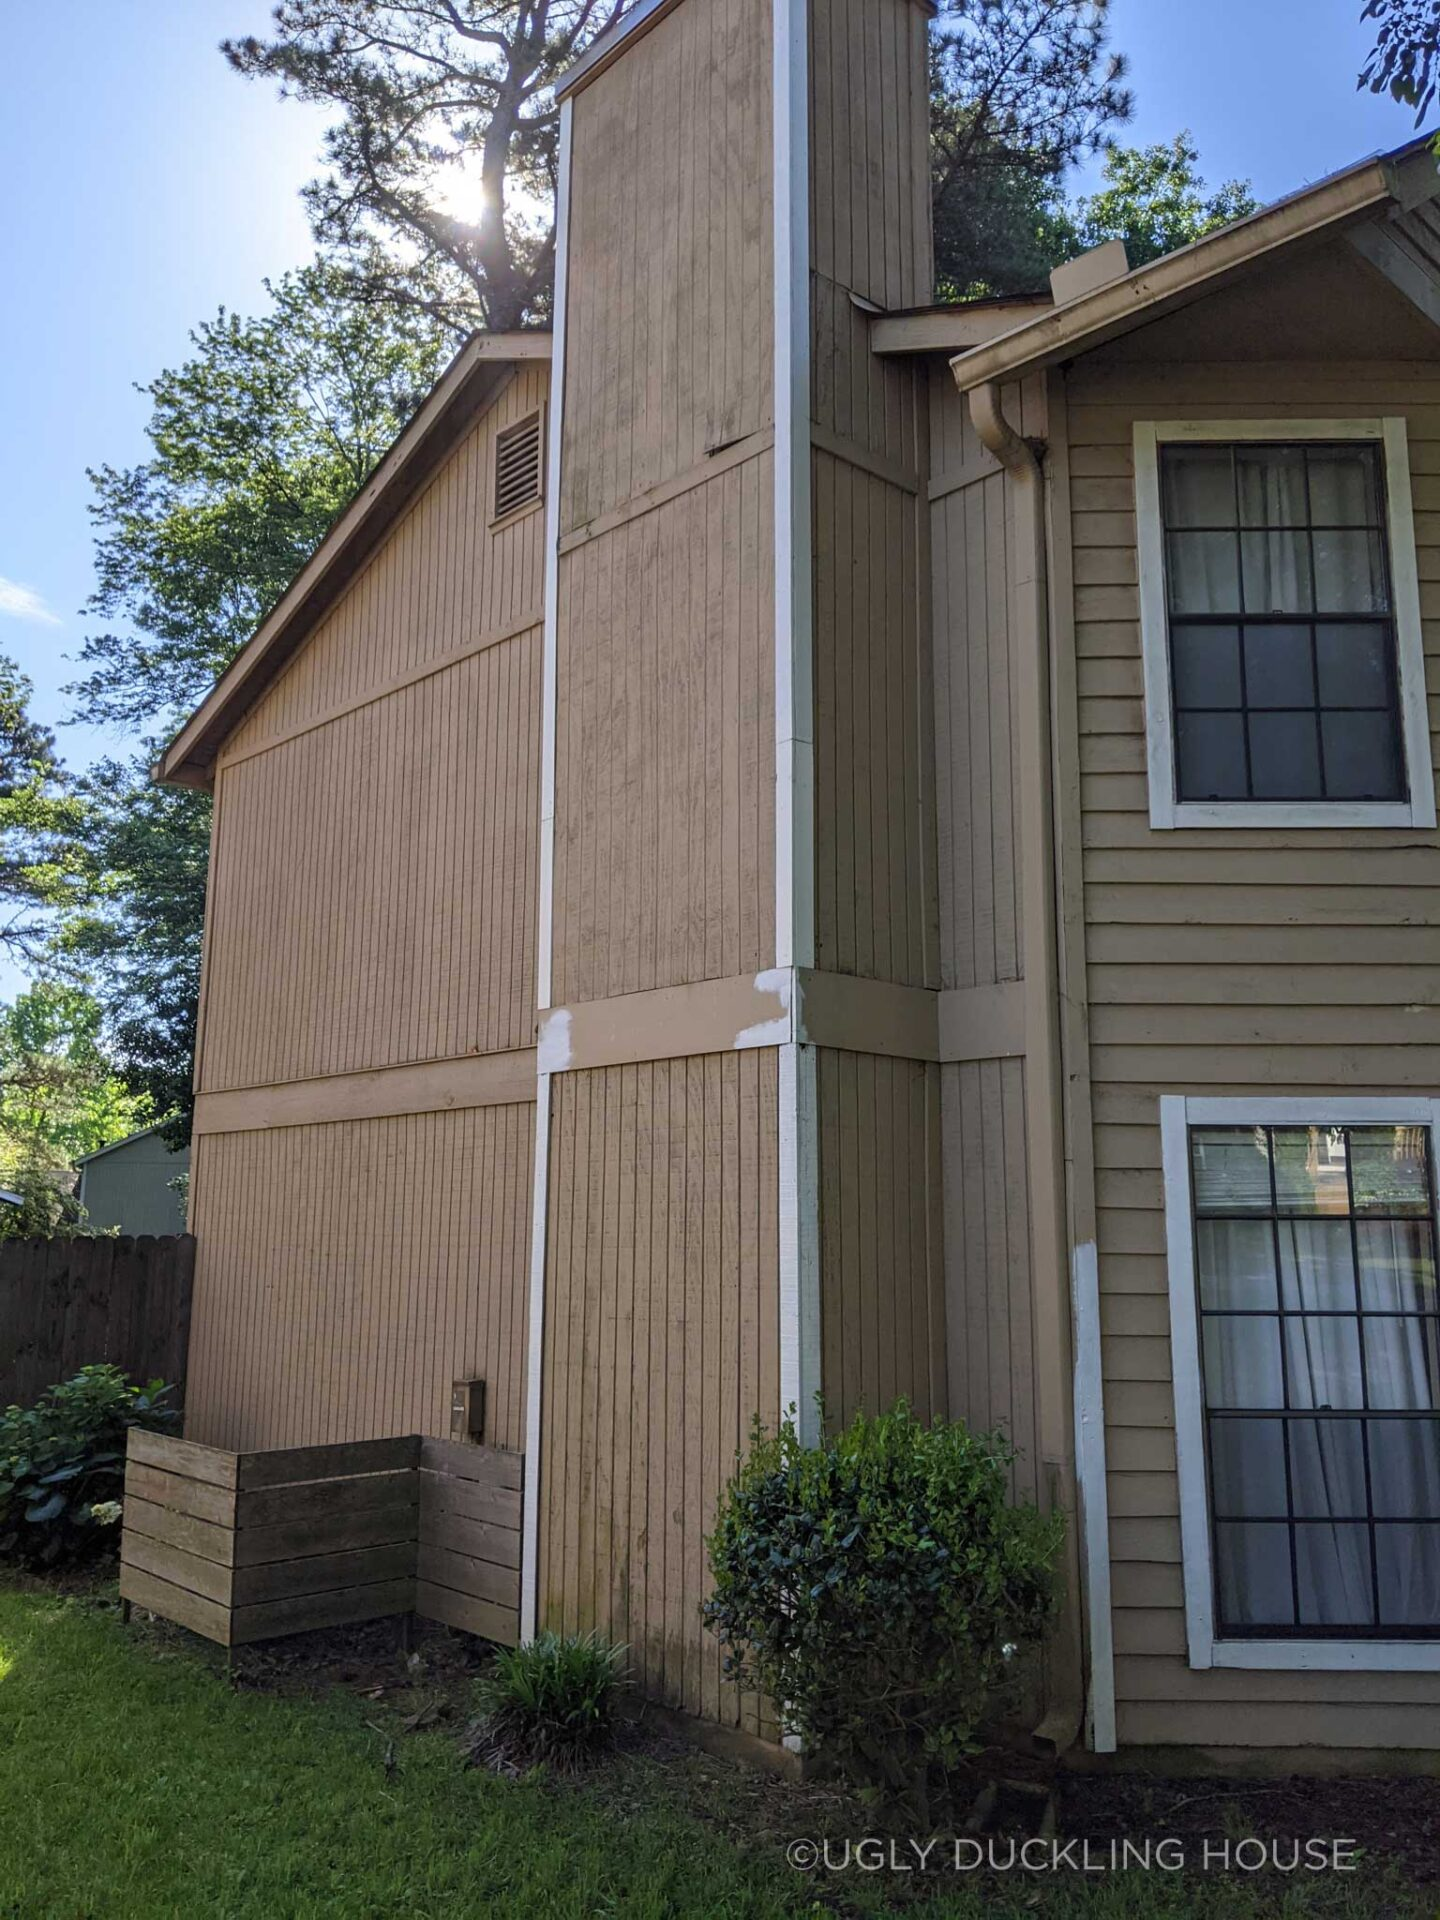 trim work left undone on the side of the house